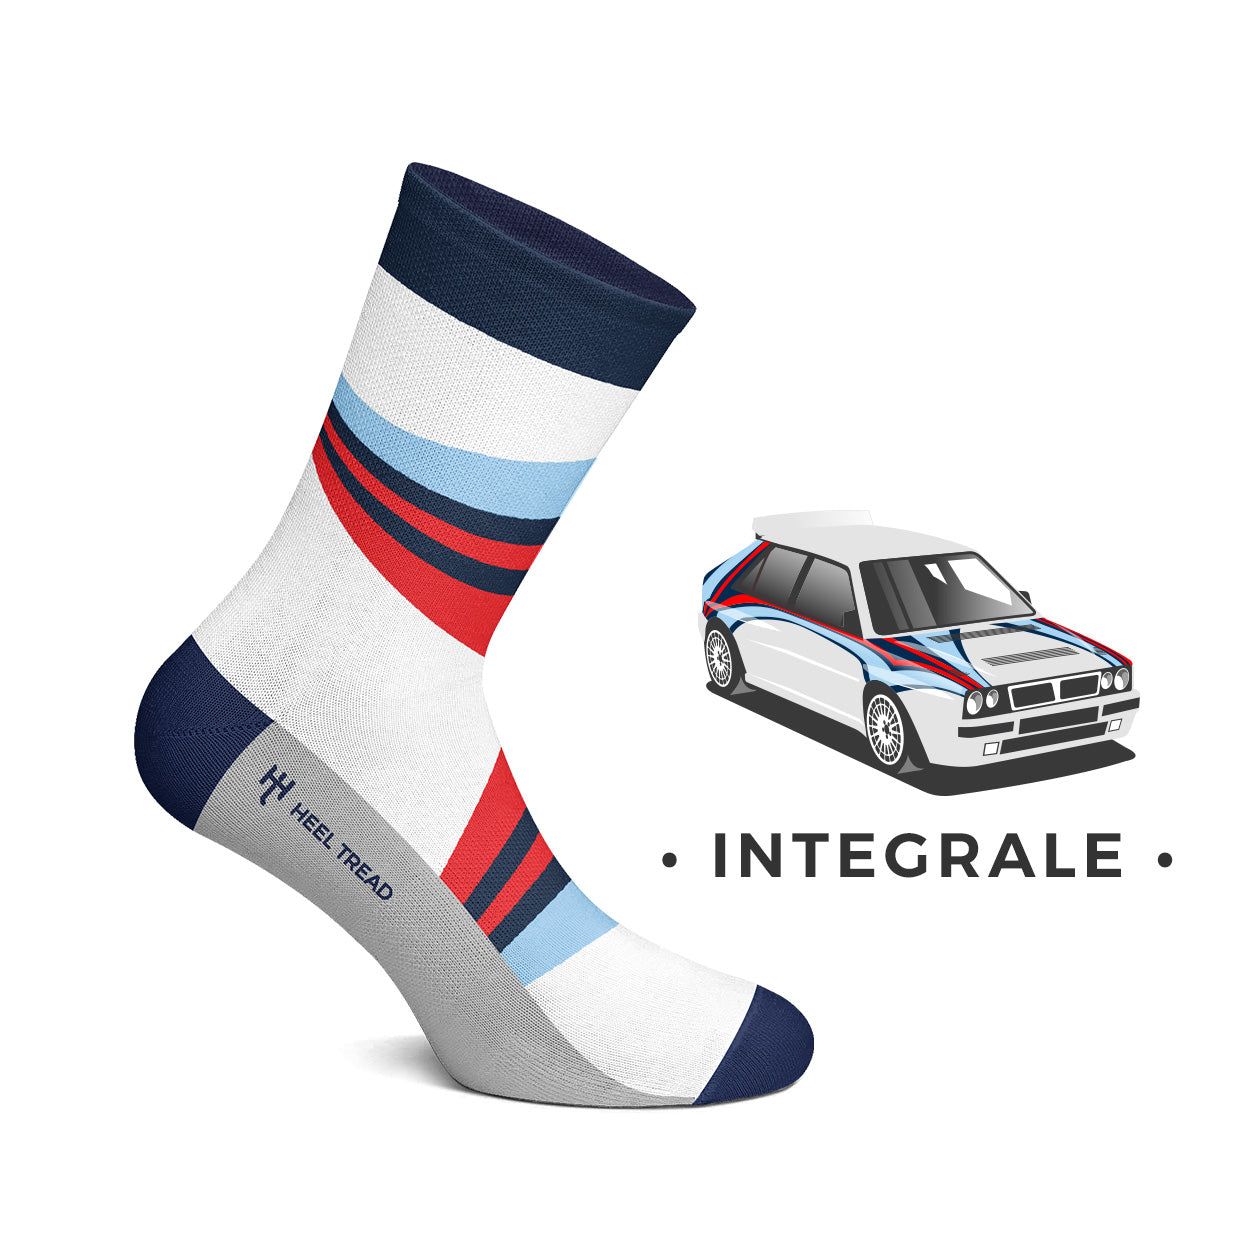 Integrale Socks